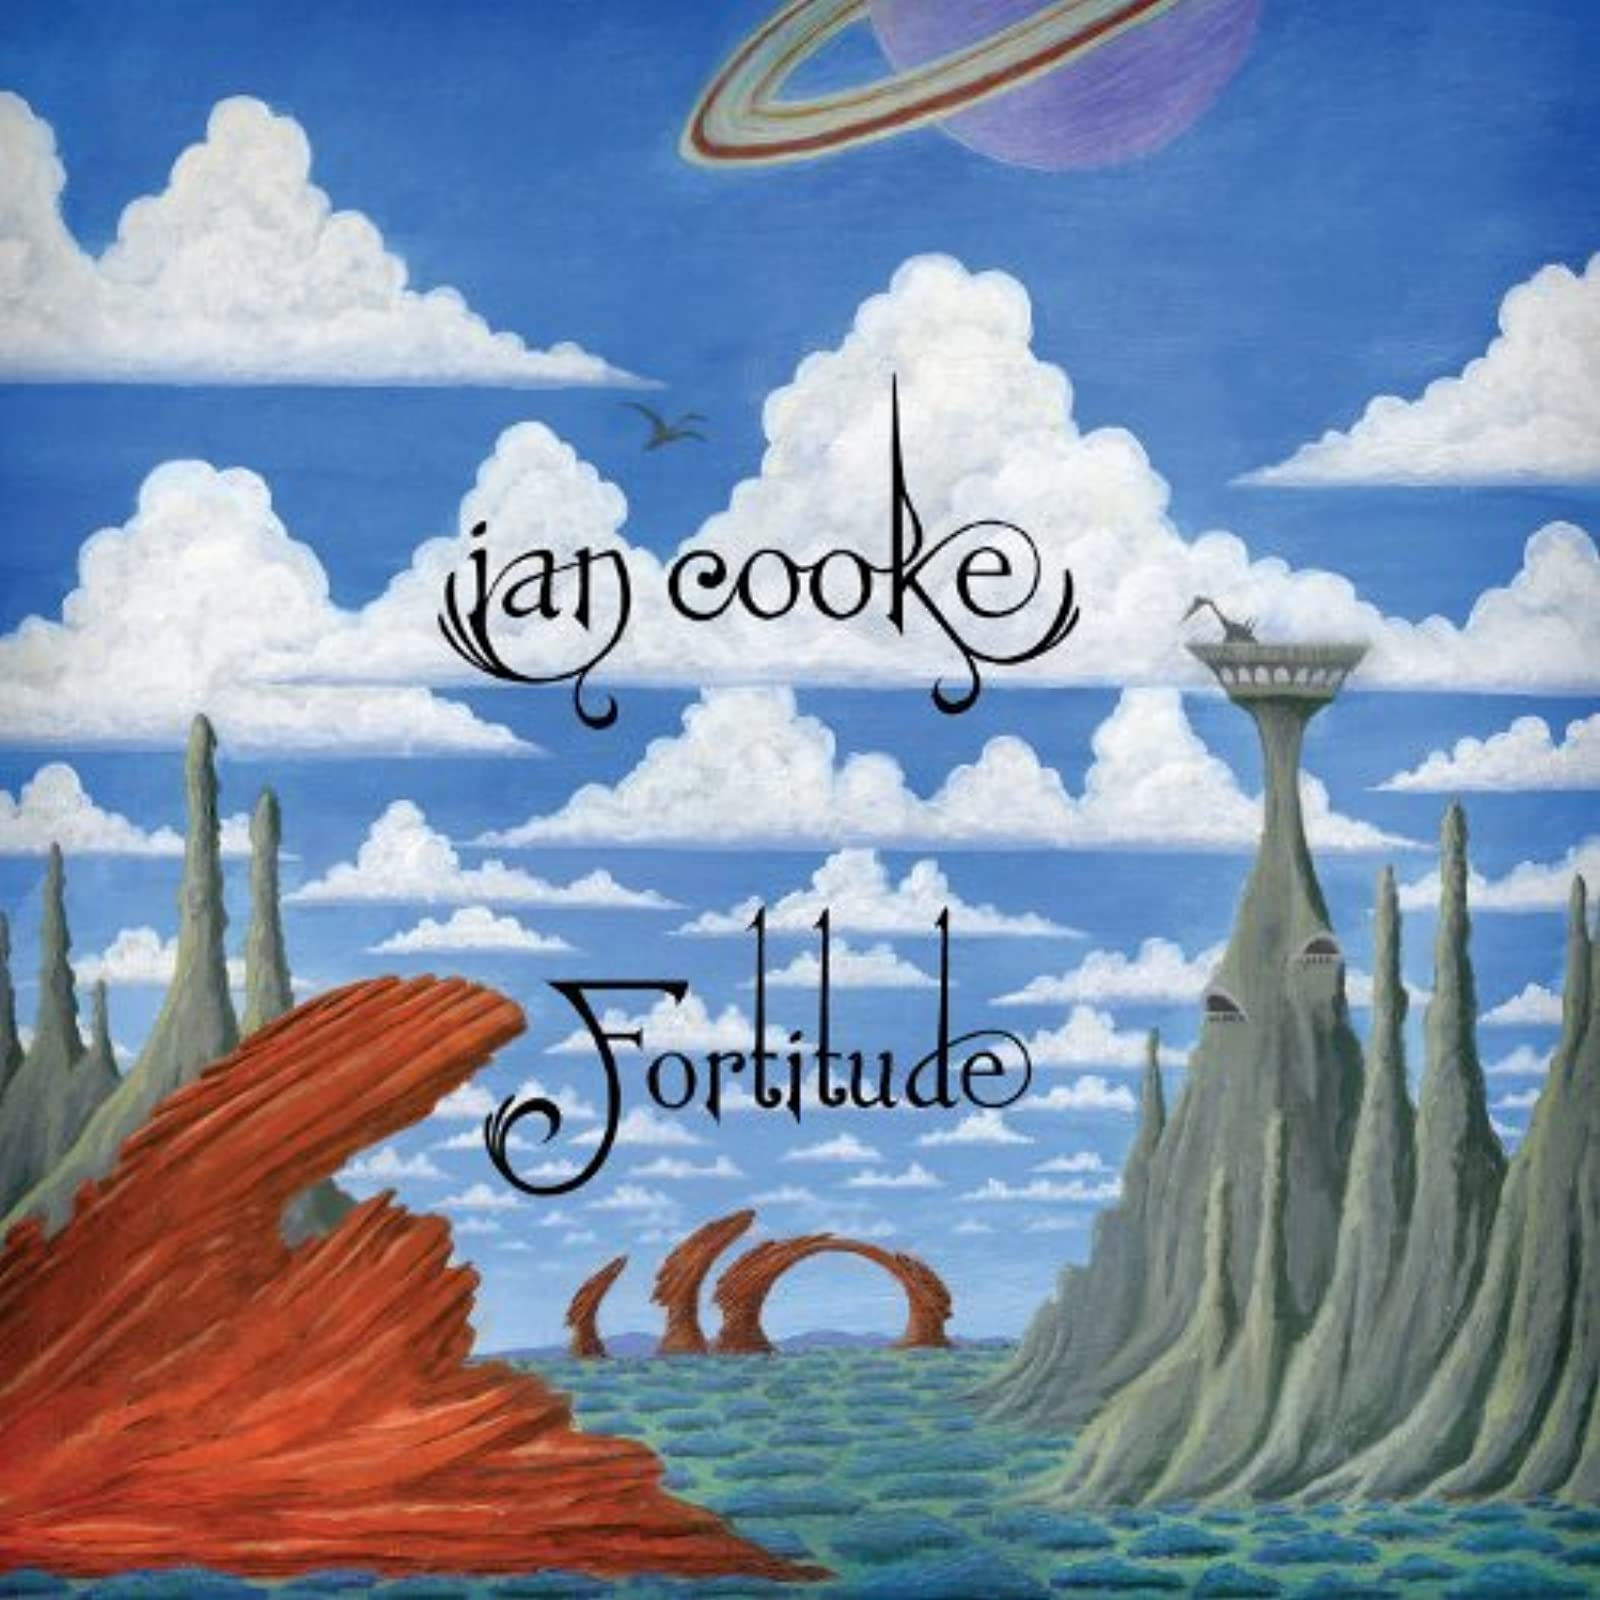 Fortitude By Ian Cooke On Vinyl LP Record